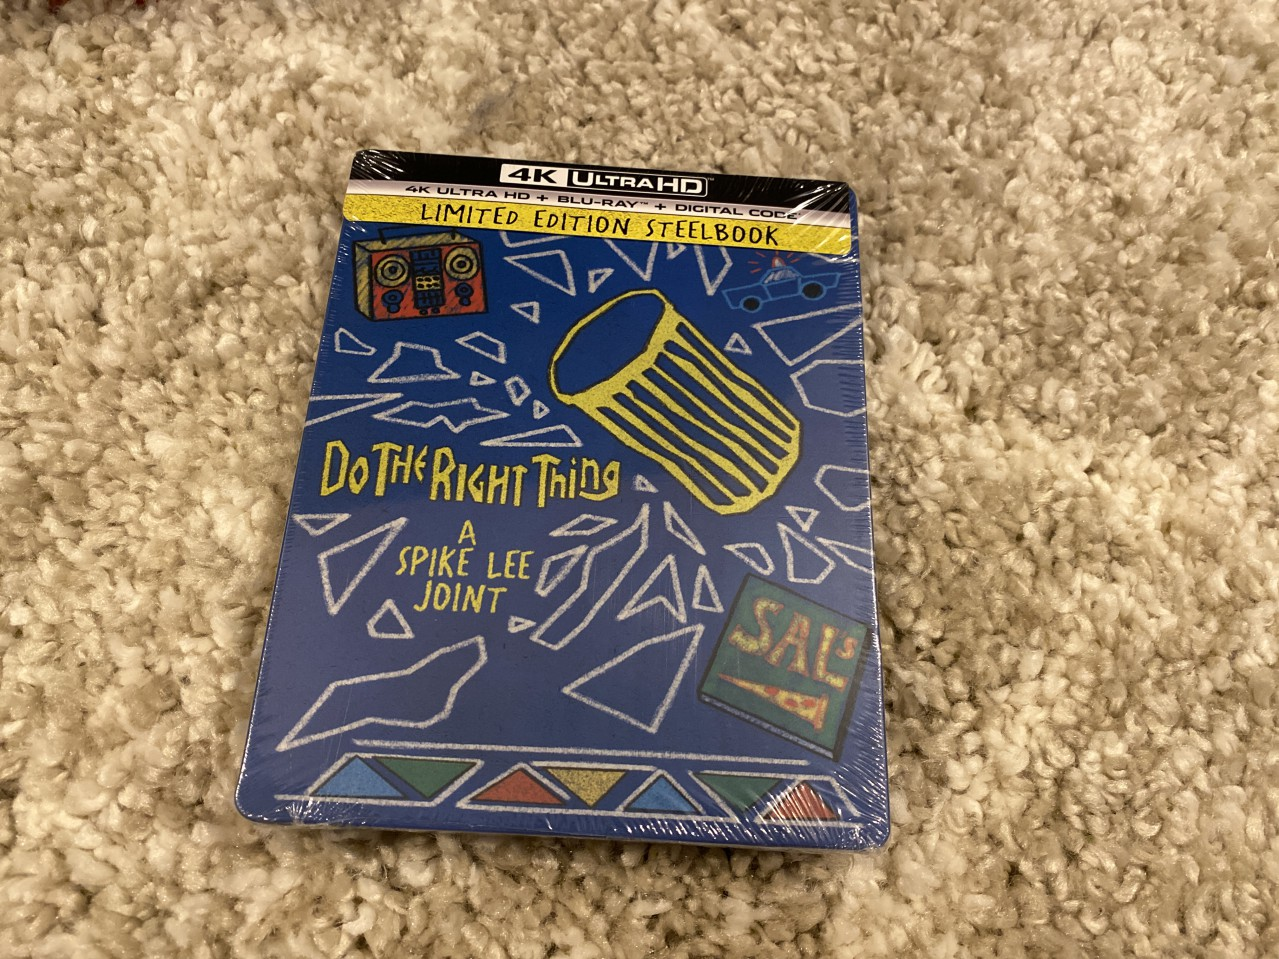 Do The Right Thing 4K UHD Blu-ray in a Steelbook case